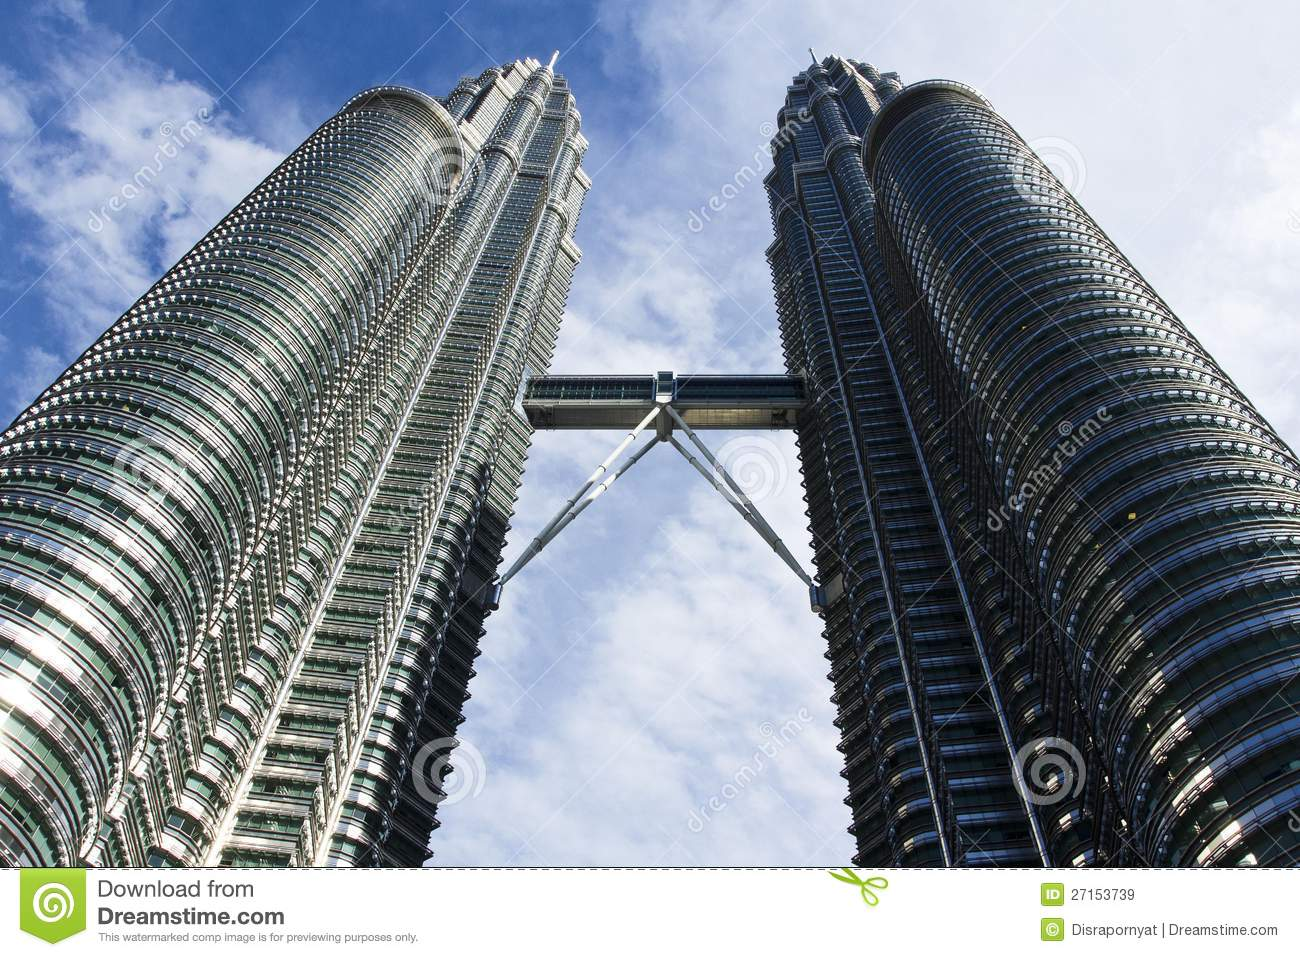 Facts About The Petronas Twin Towers The Petronas Twin Towers on